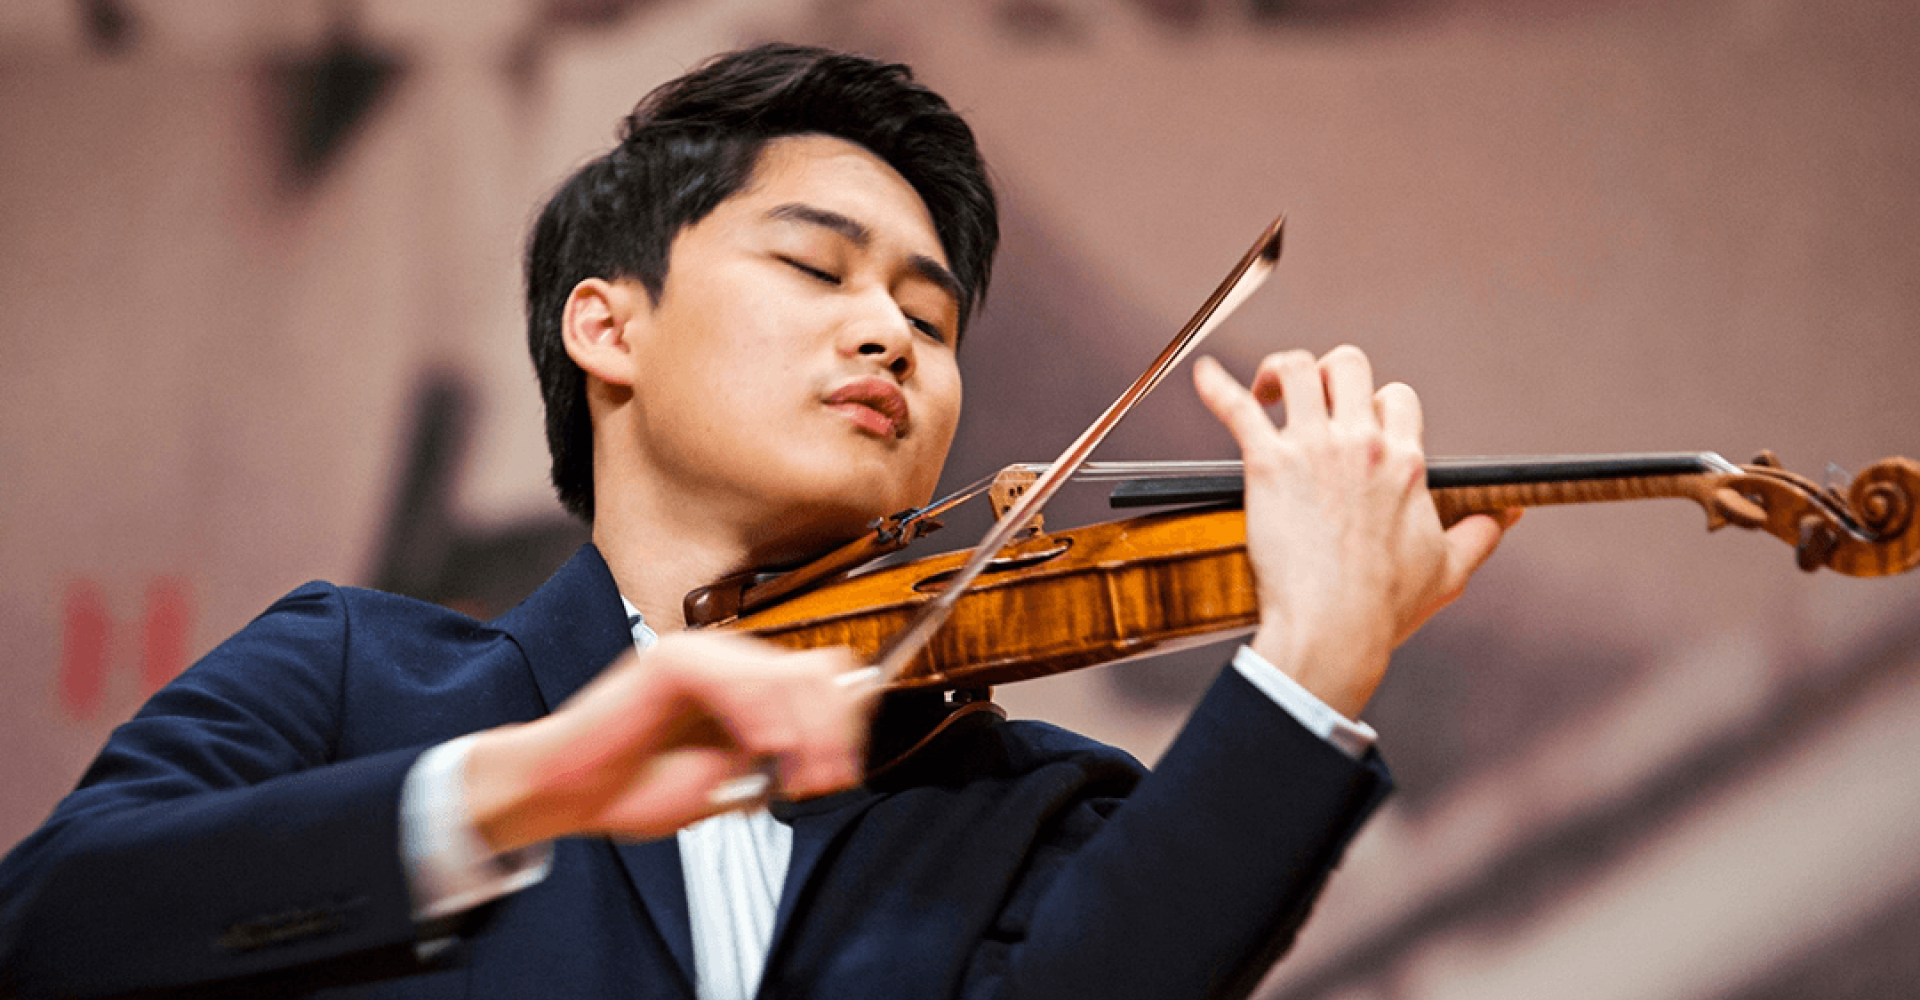 Artist Diploma student Inmo Yang plays the violin with his eyes closed.